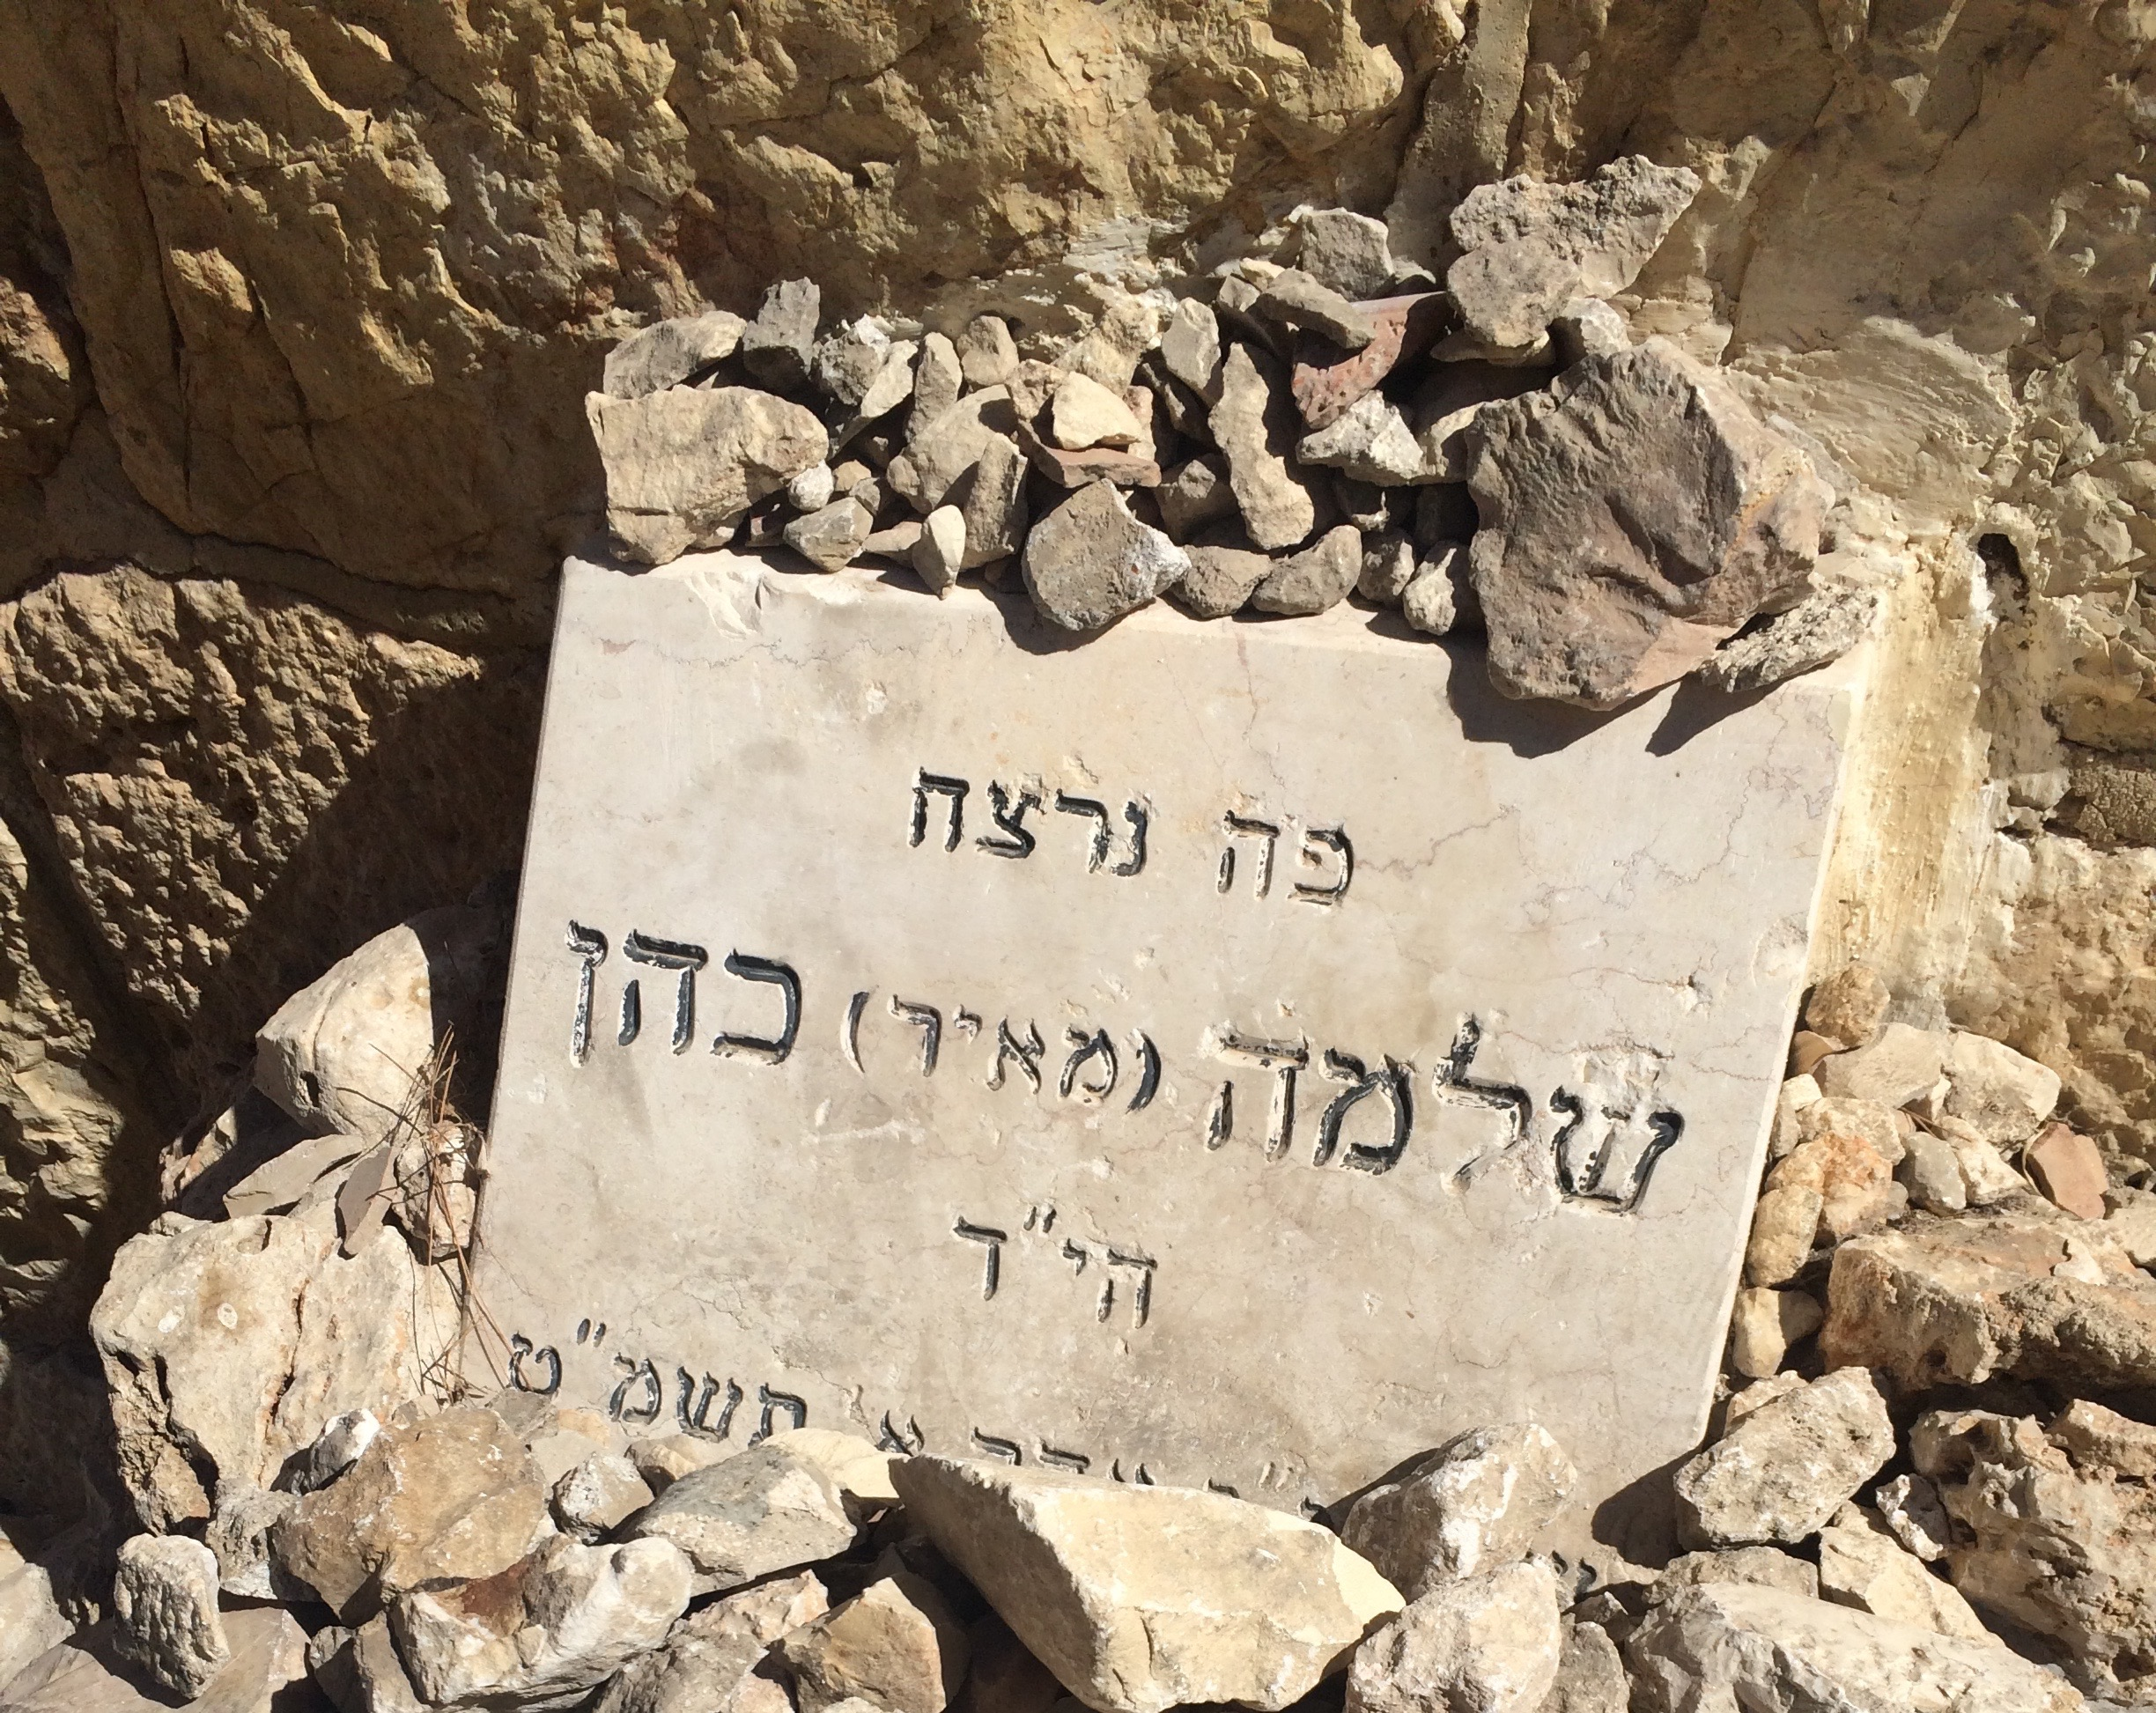 On this spot Shlomo Meir Ha-Cohen was murdered by terrorists.